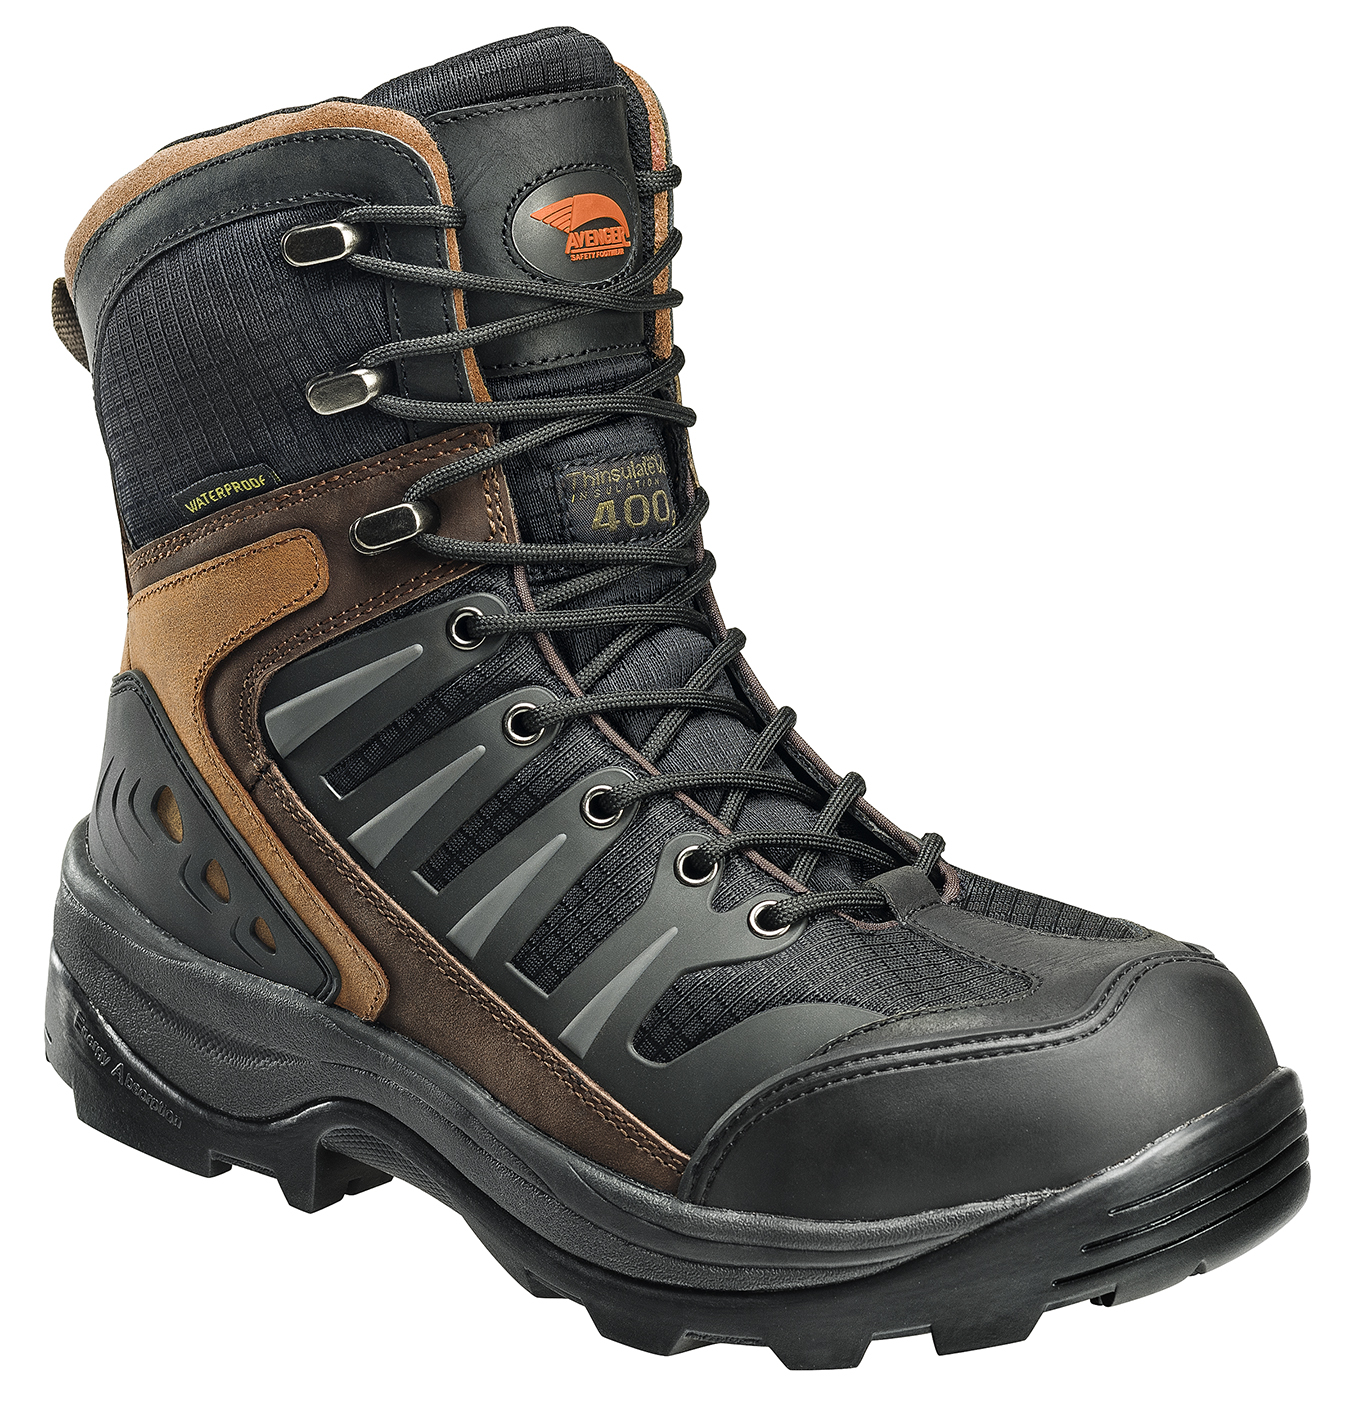 "Avenger Men's 7275 8"" Waterproof EH Comp Toe Work Boot"